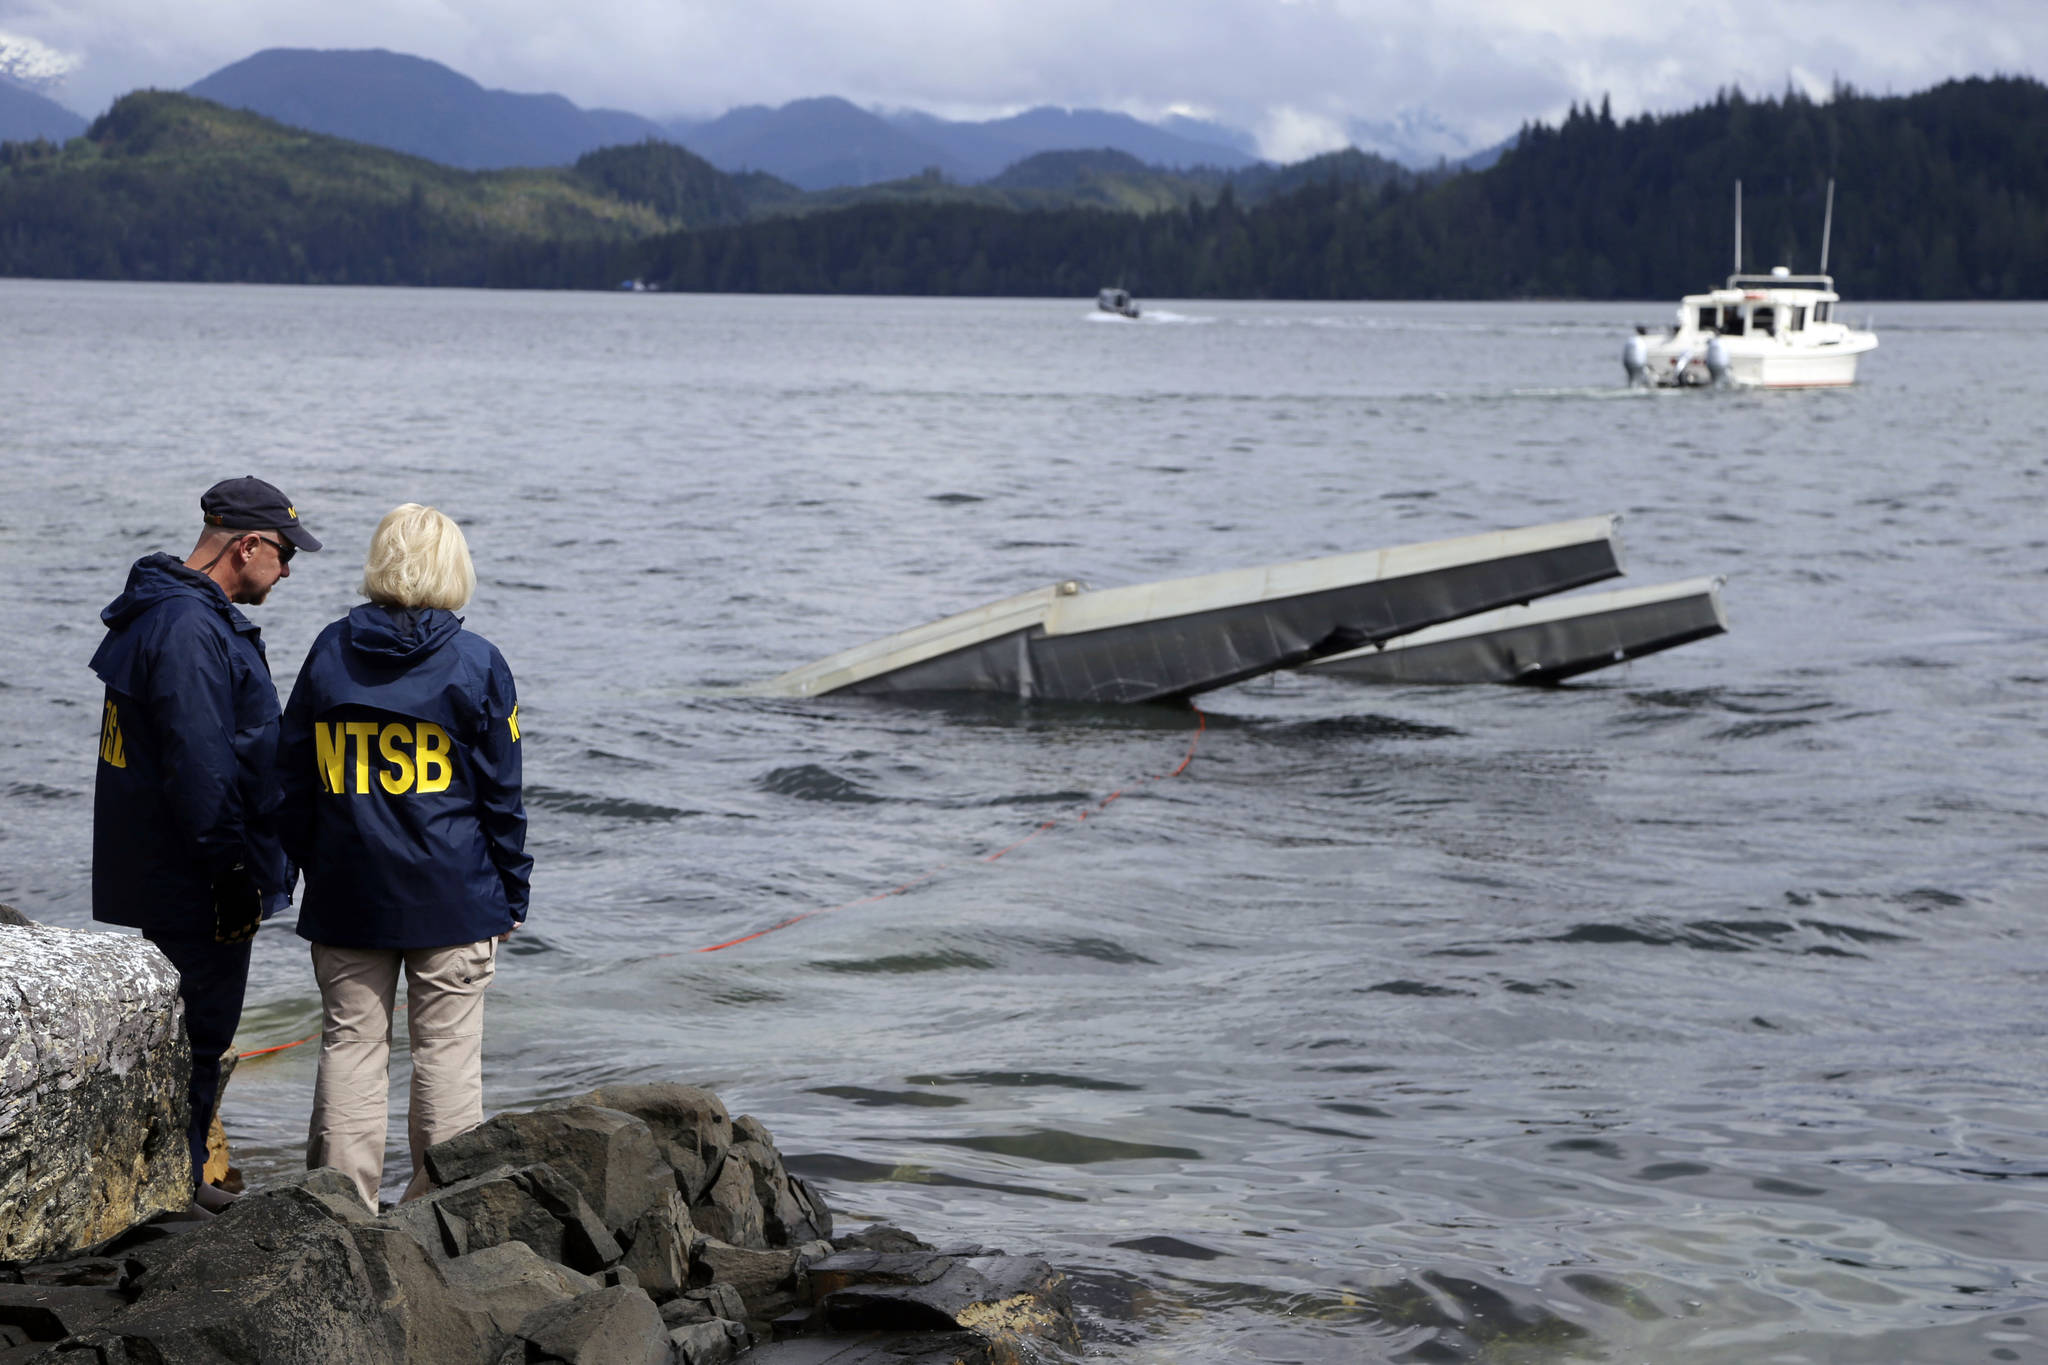 NTSB investigator Clint Crookshanks, left, and member Jennifer Homendy stand near the site of some of the wreckage of the DHC-2 Beaver, Wednesday, May 15, 2019, that was involved in a midair collision near Ketchikan, Alaska, a couple of days earlier. The pilots of two Alaskan sightseeing planes that collided in midair couldn't see the other aircraft because airplane structures or a passenger blocked their views, and they didn't get electronic alerts about close aircraft because safety systems weren't working properly. That's what the staff of the National Transportation Safety board found in their investigation. (Peter Knudson / NTSB)